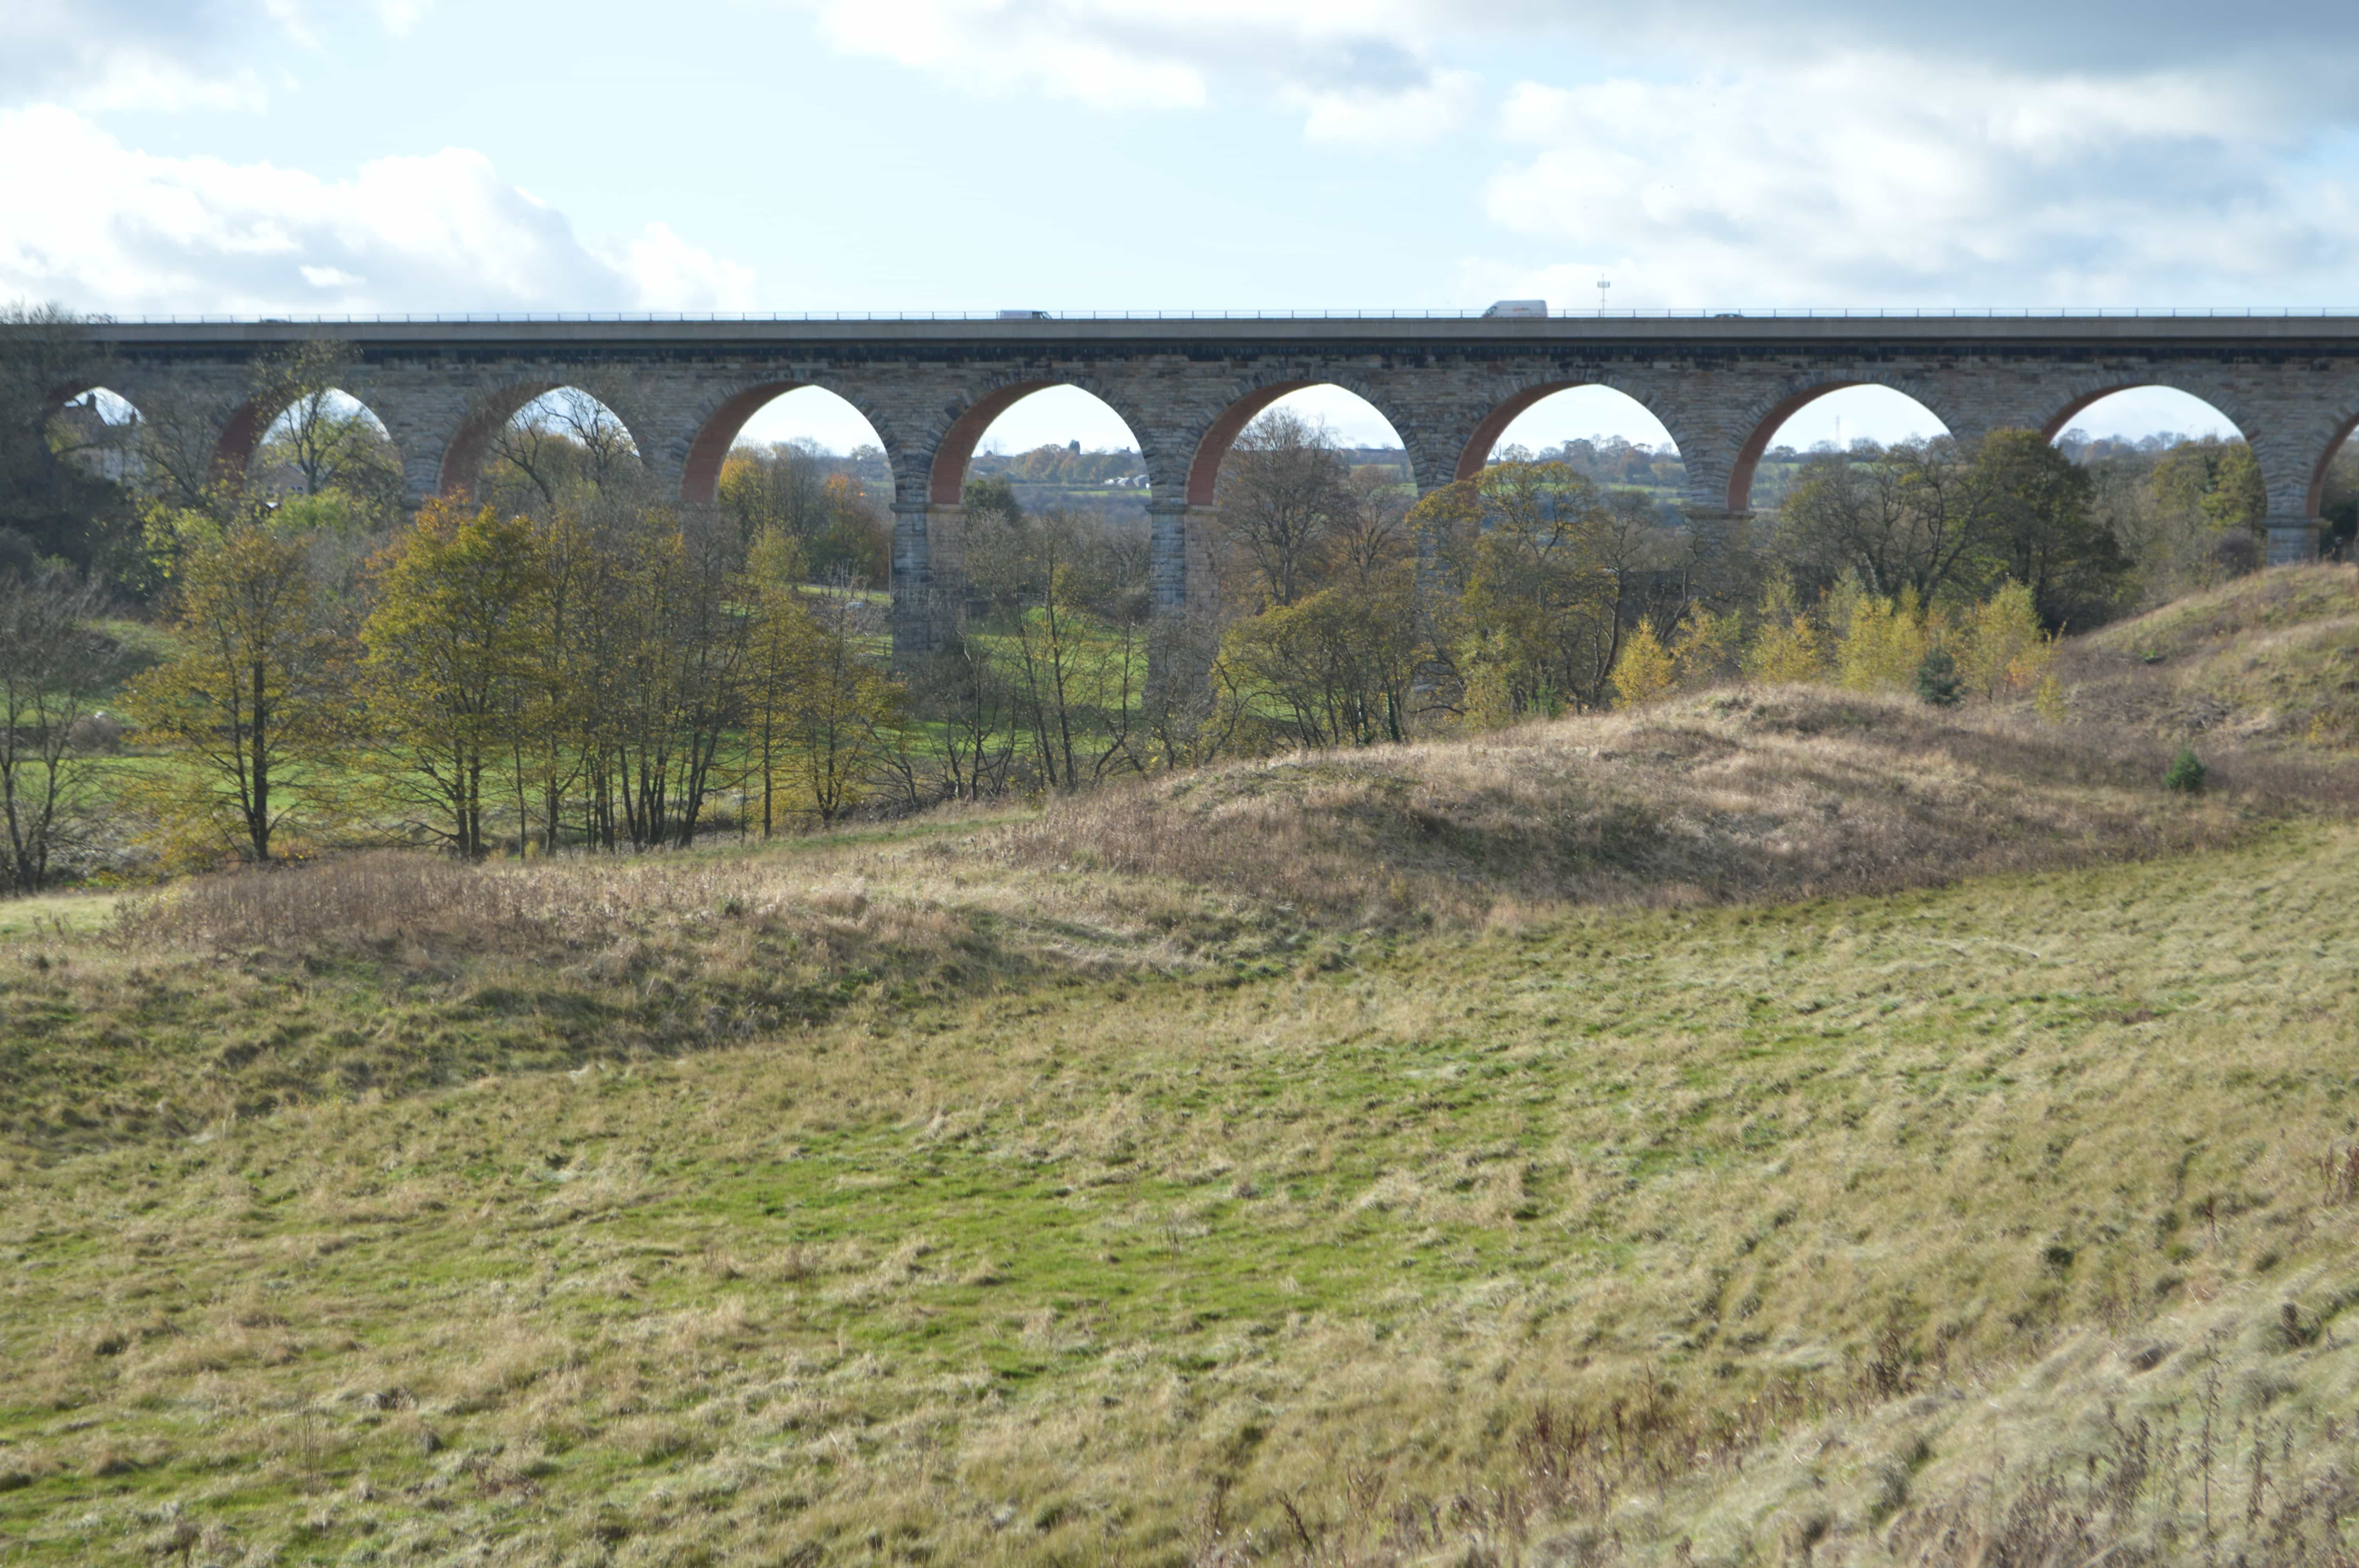 Shot of the 11 gothic arches of Bishop Auckland Viiaduct towering over the valley of the Wear